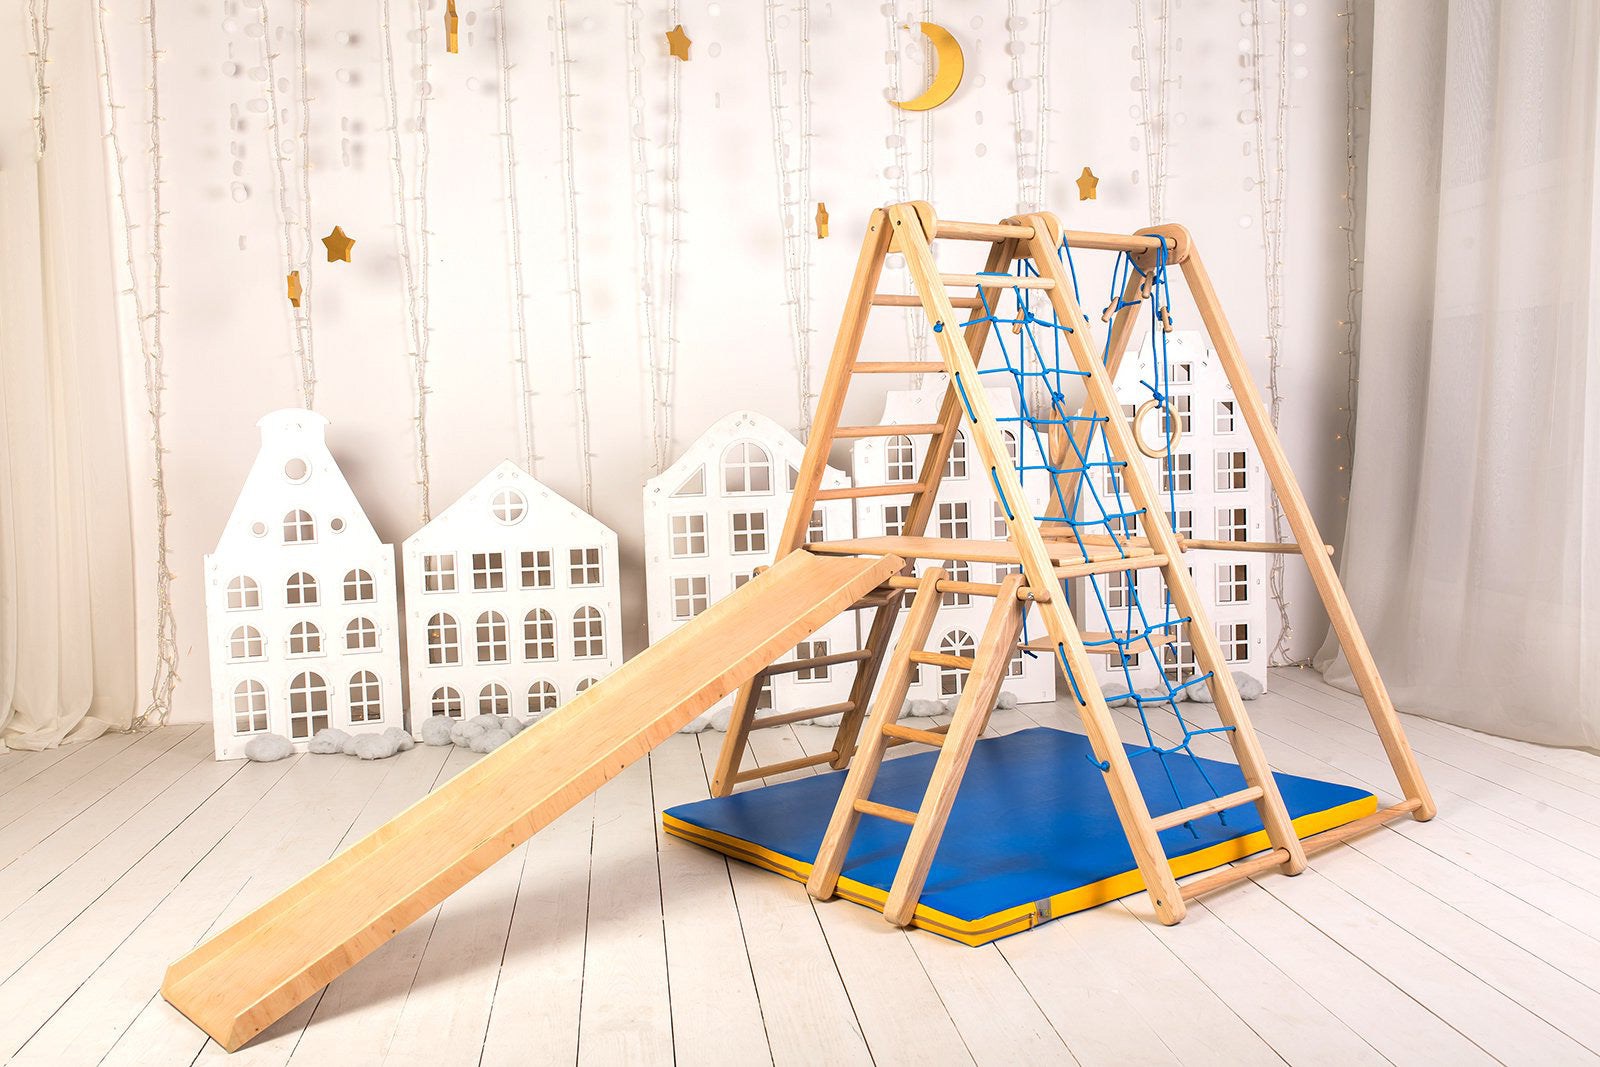 Wooden playset for toddlers